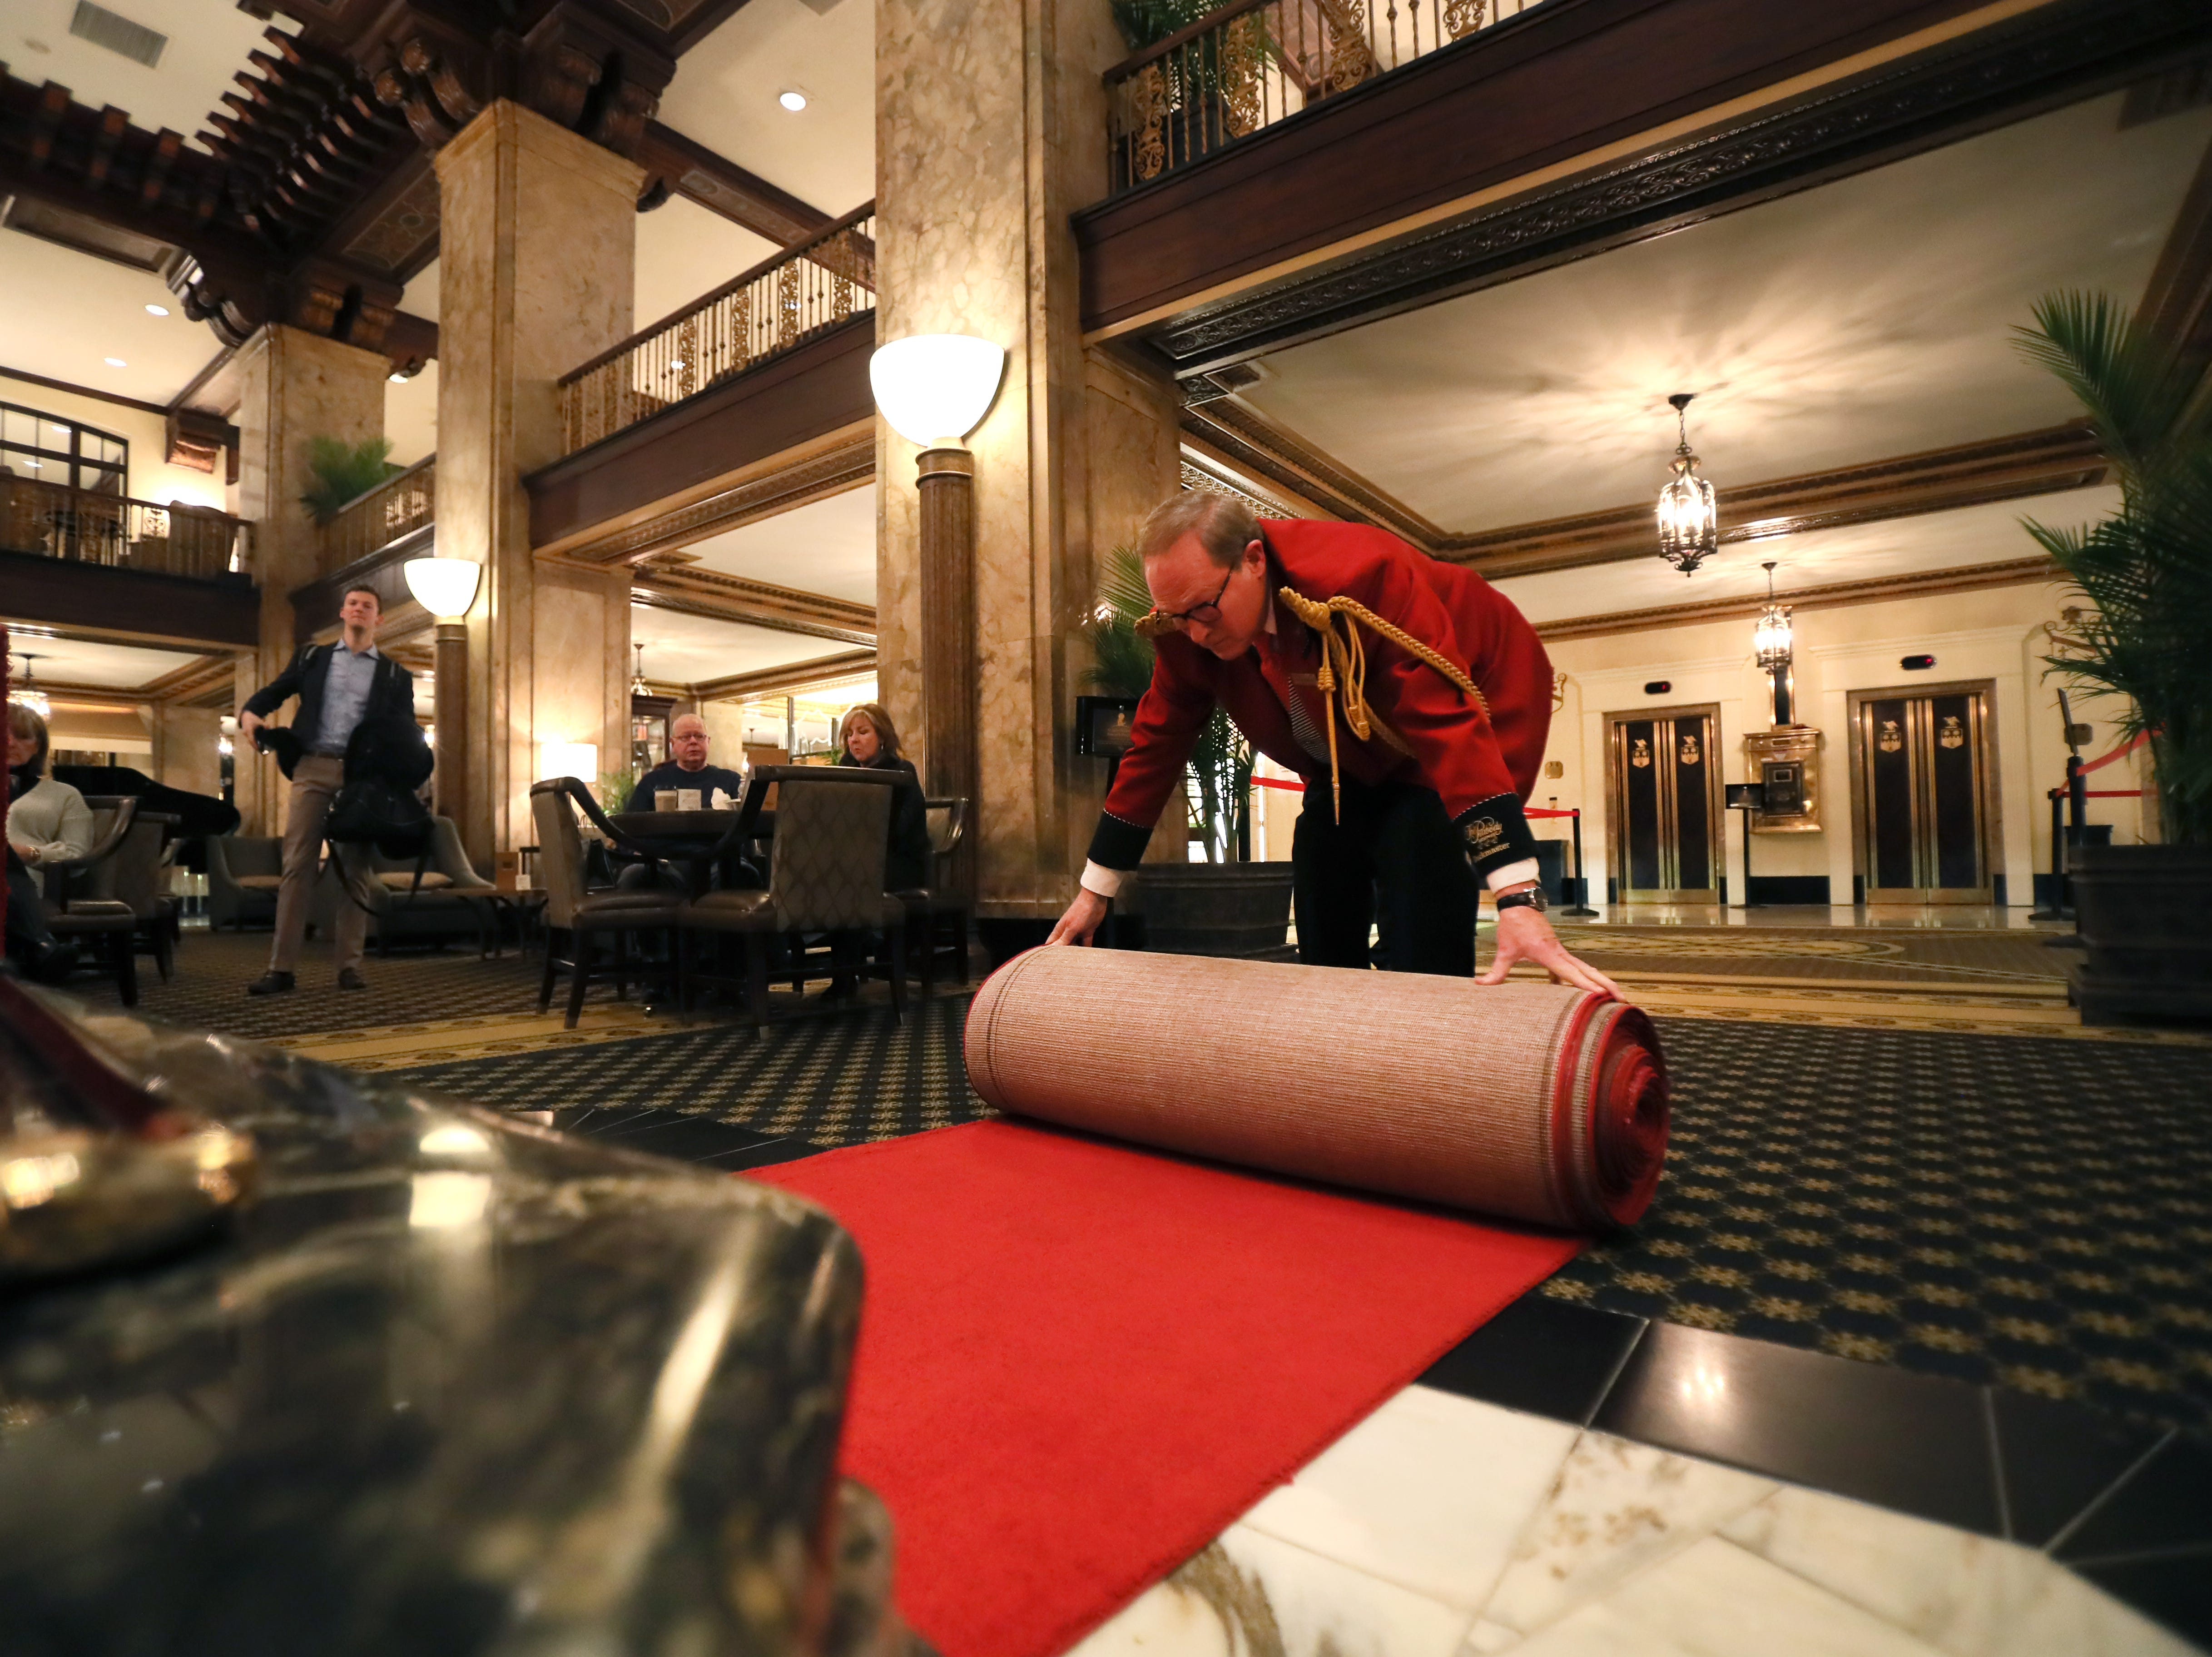 Doug Weatherford, Duckmaster at the Peabody Hotel, rolls out the red carpet for his fowl troop at the downtown Memphis landmark on Thursday, Feb. 21, 2019.